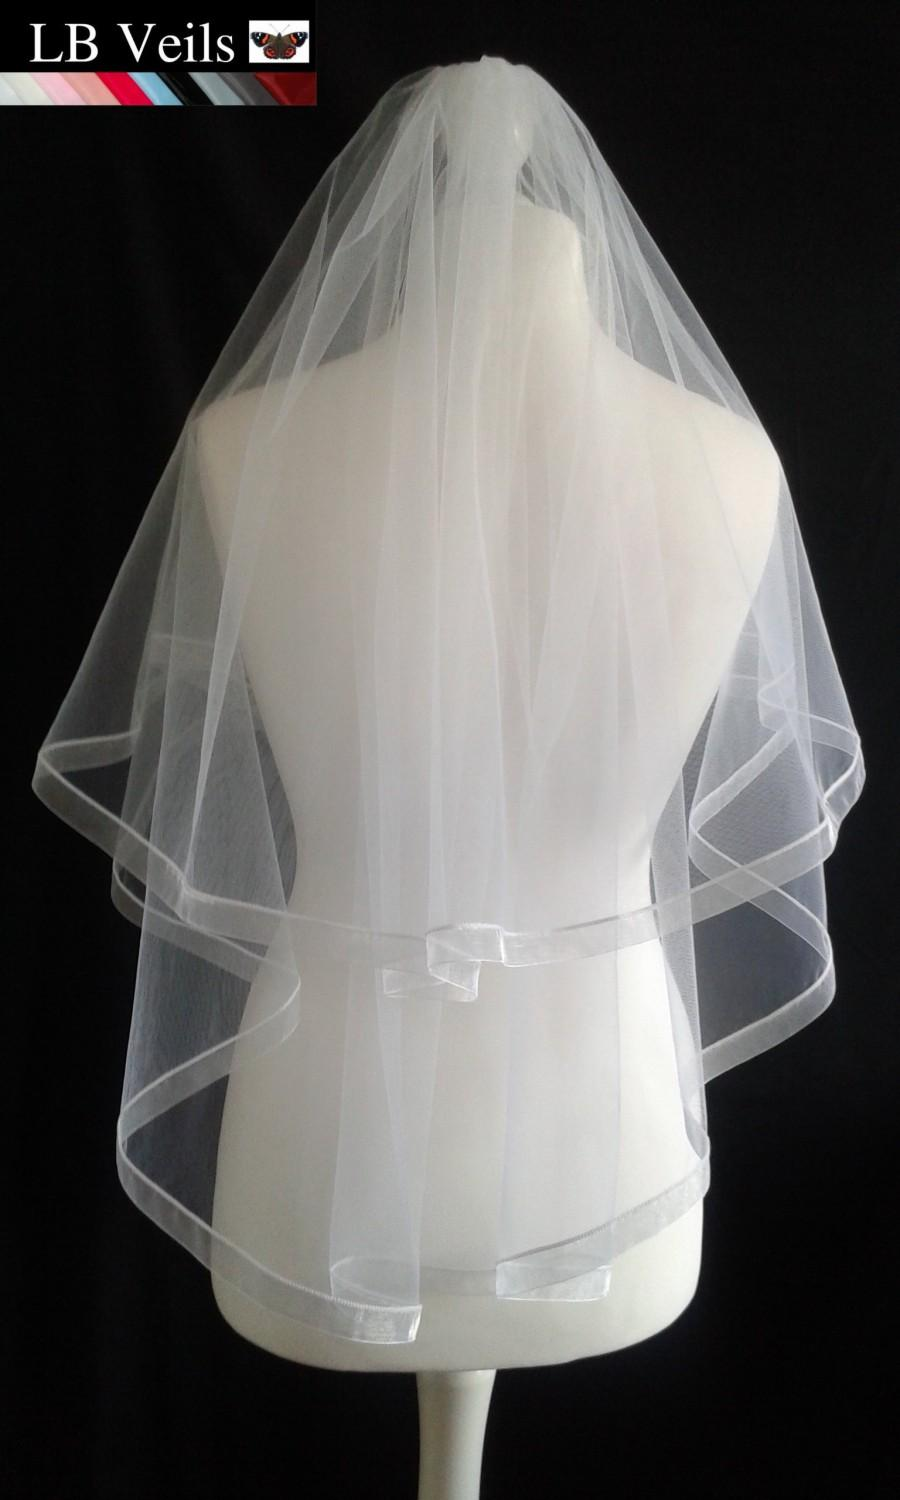 Mariage - White, 2 Tier, Veil, Ribbon, Edge, Wedding, Organza, Waist, Length, Elbow, Fingertip, Short, Chapel, Pink, Grey, Black, LB Veils LBV184 UK